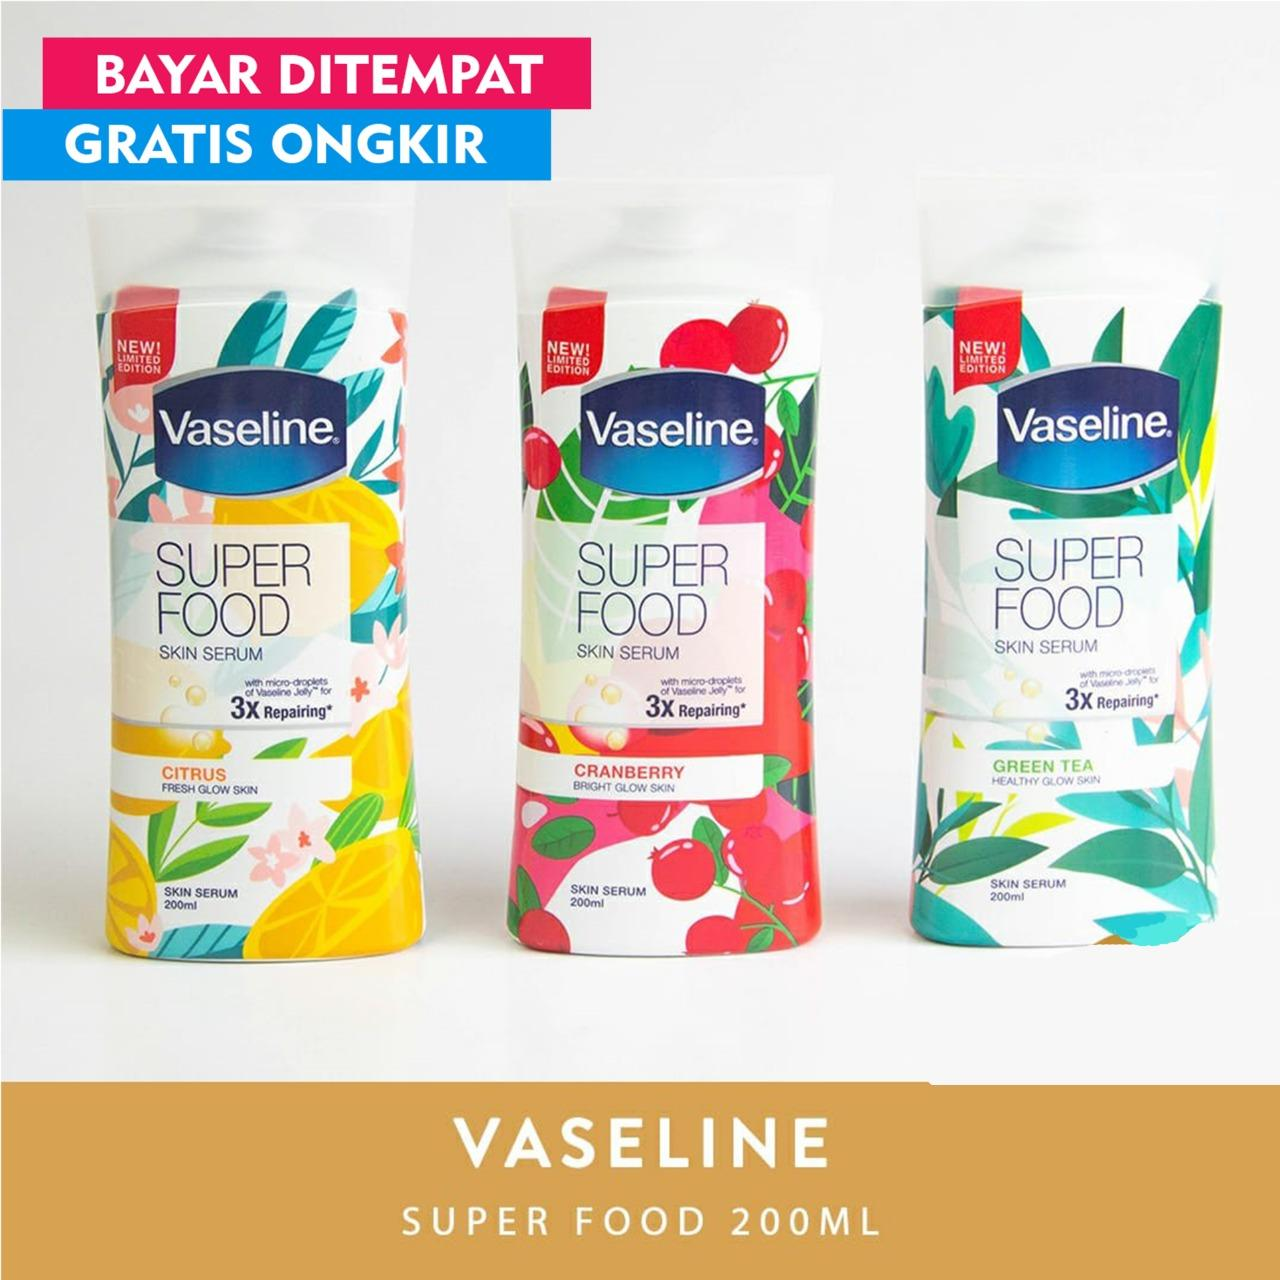 Vaseline Super Food Serum Body Lotion 200ml - Xaiver